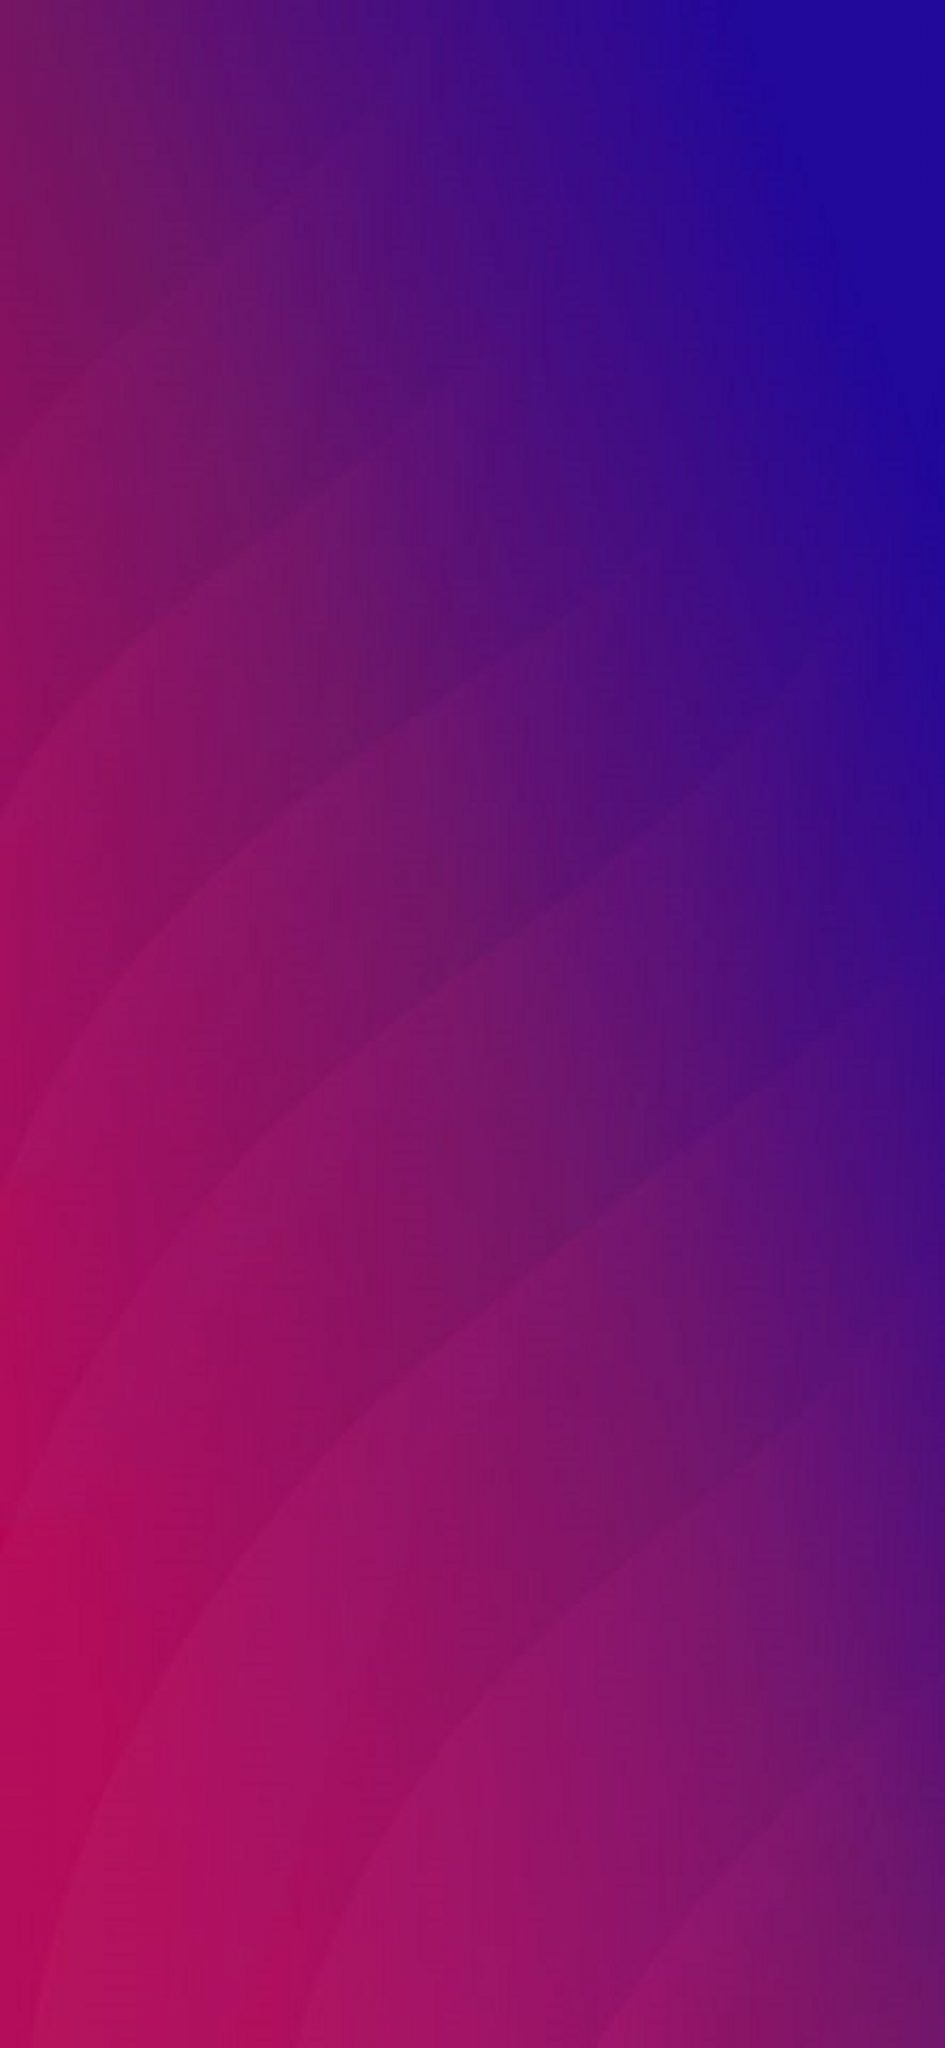 Download Oppo Find X Stock Wallpapers - ZIP File Included 6